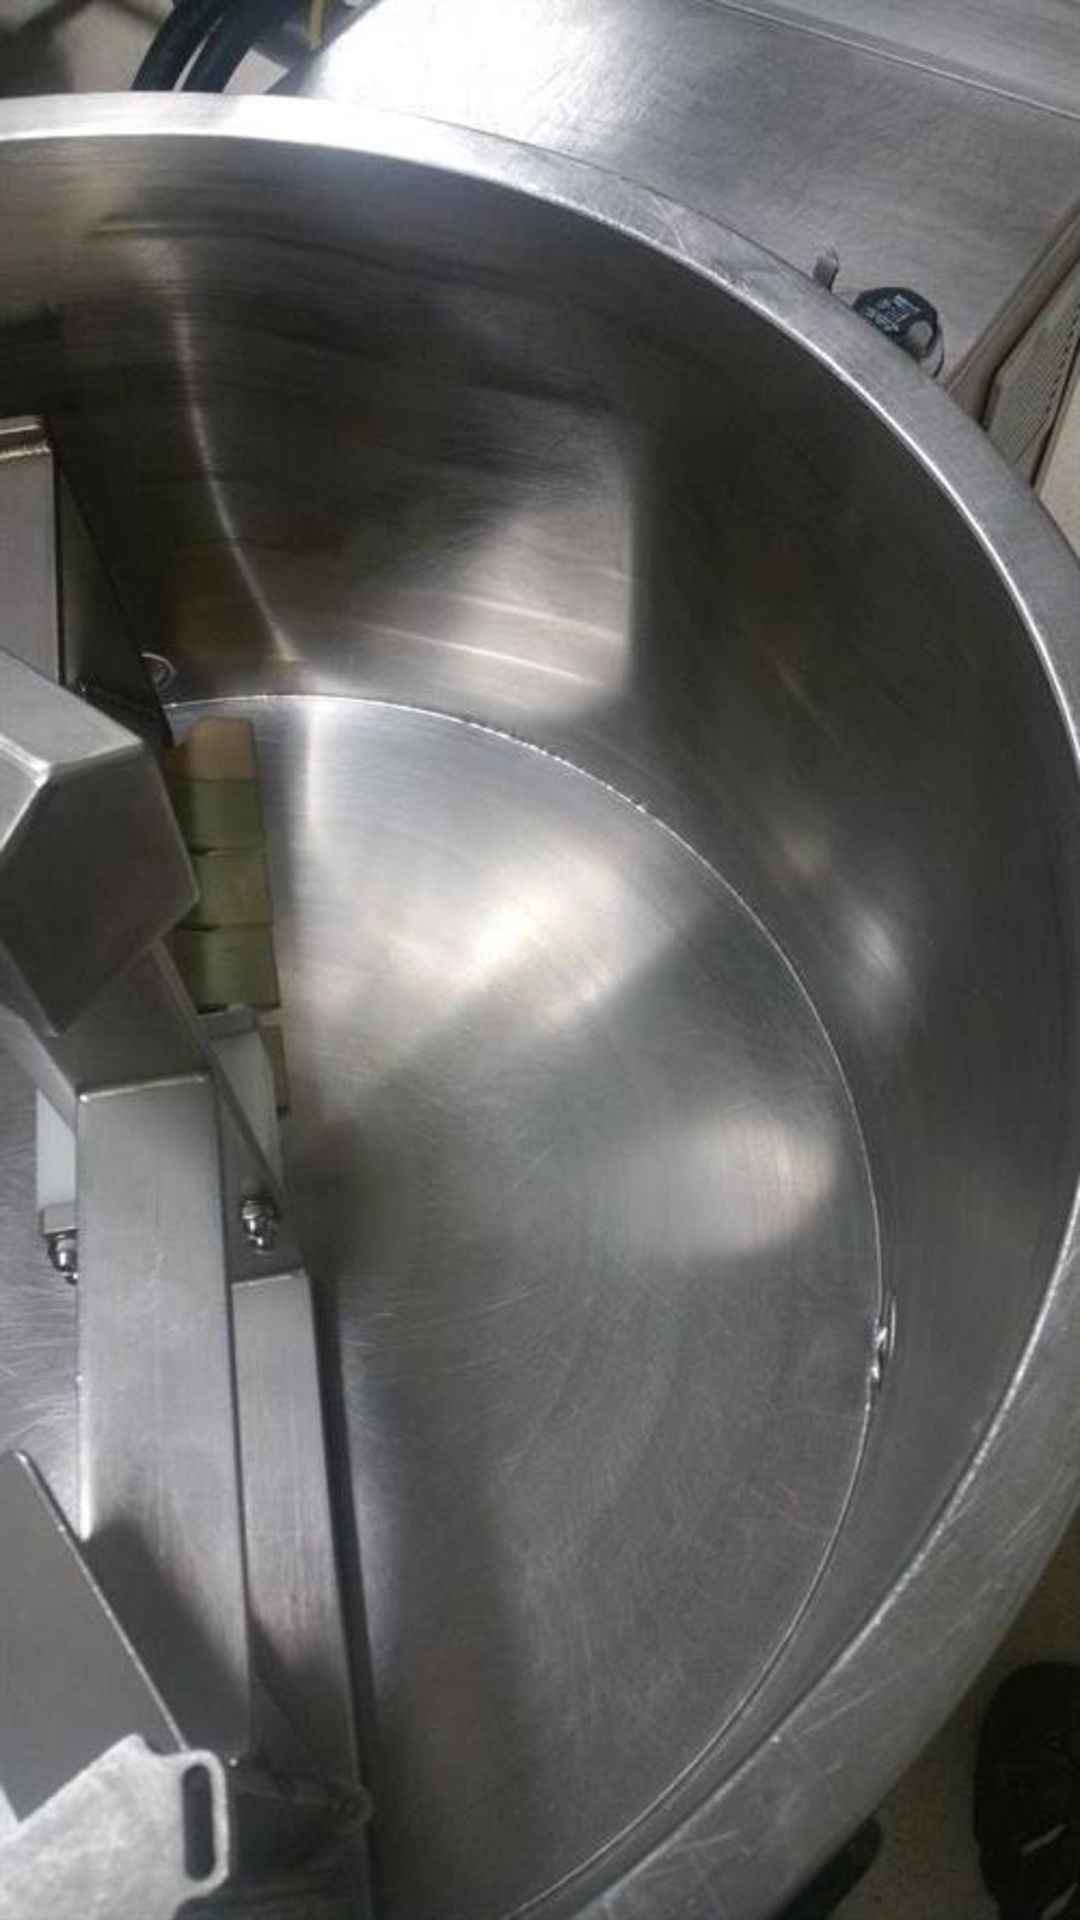 Savage 300-lb Stainless Steel Auto tempering Melter with Metering Pump - All stainless steel - Water - Image 4 of 12